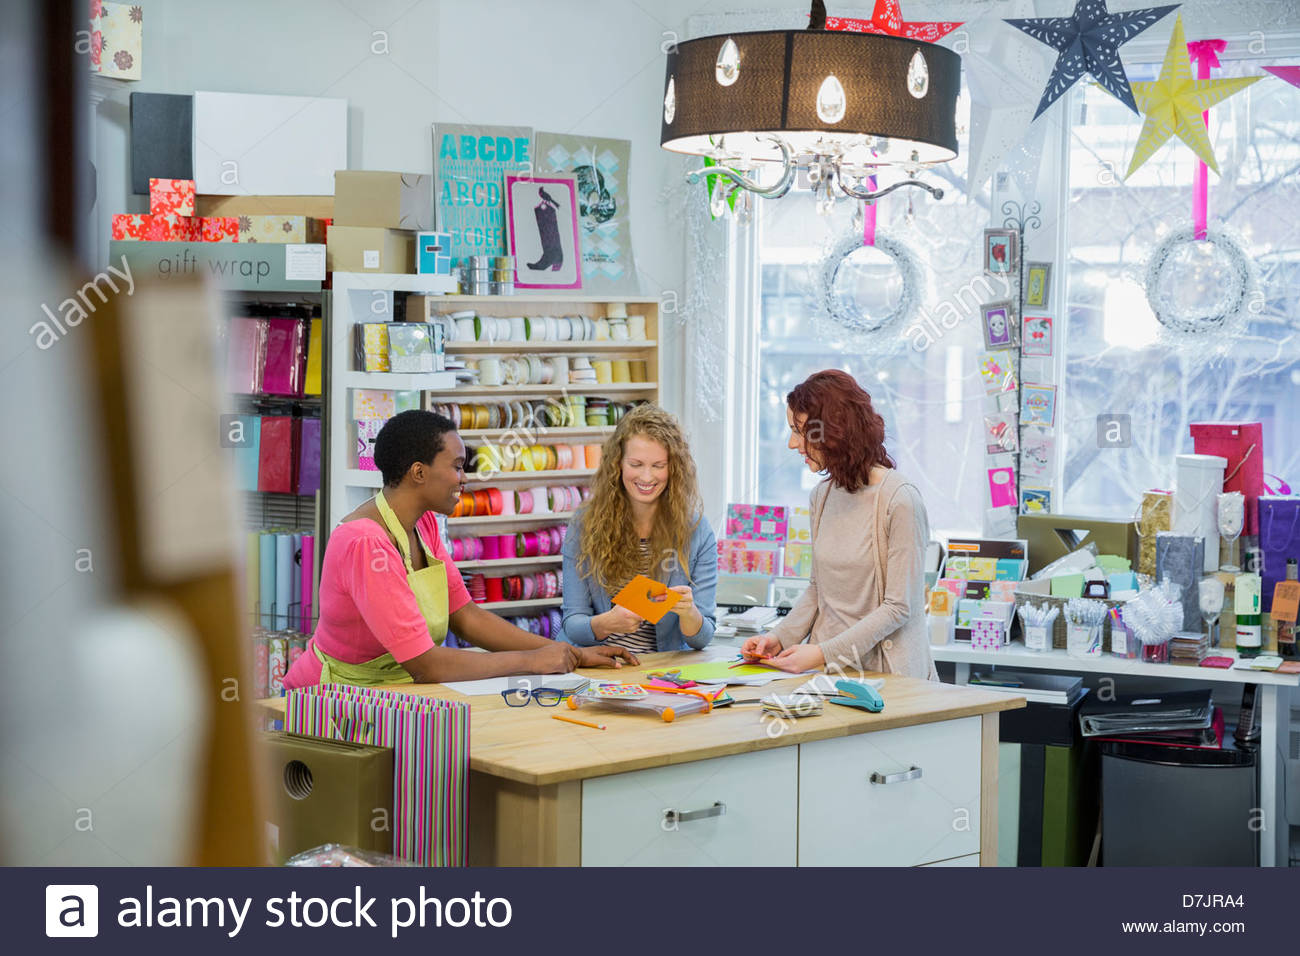 Female small business owner teaching customers in store - Stock Image